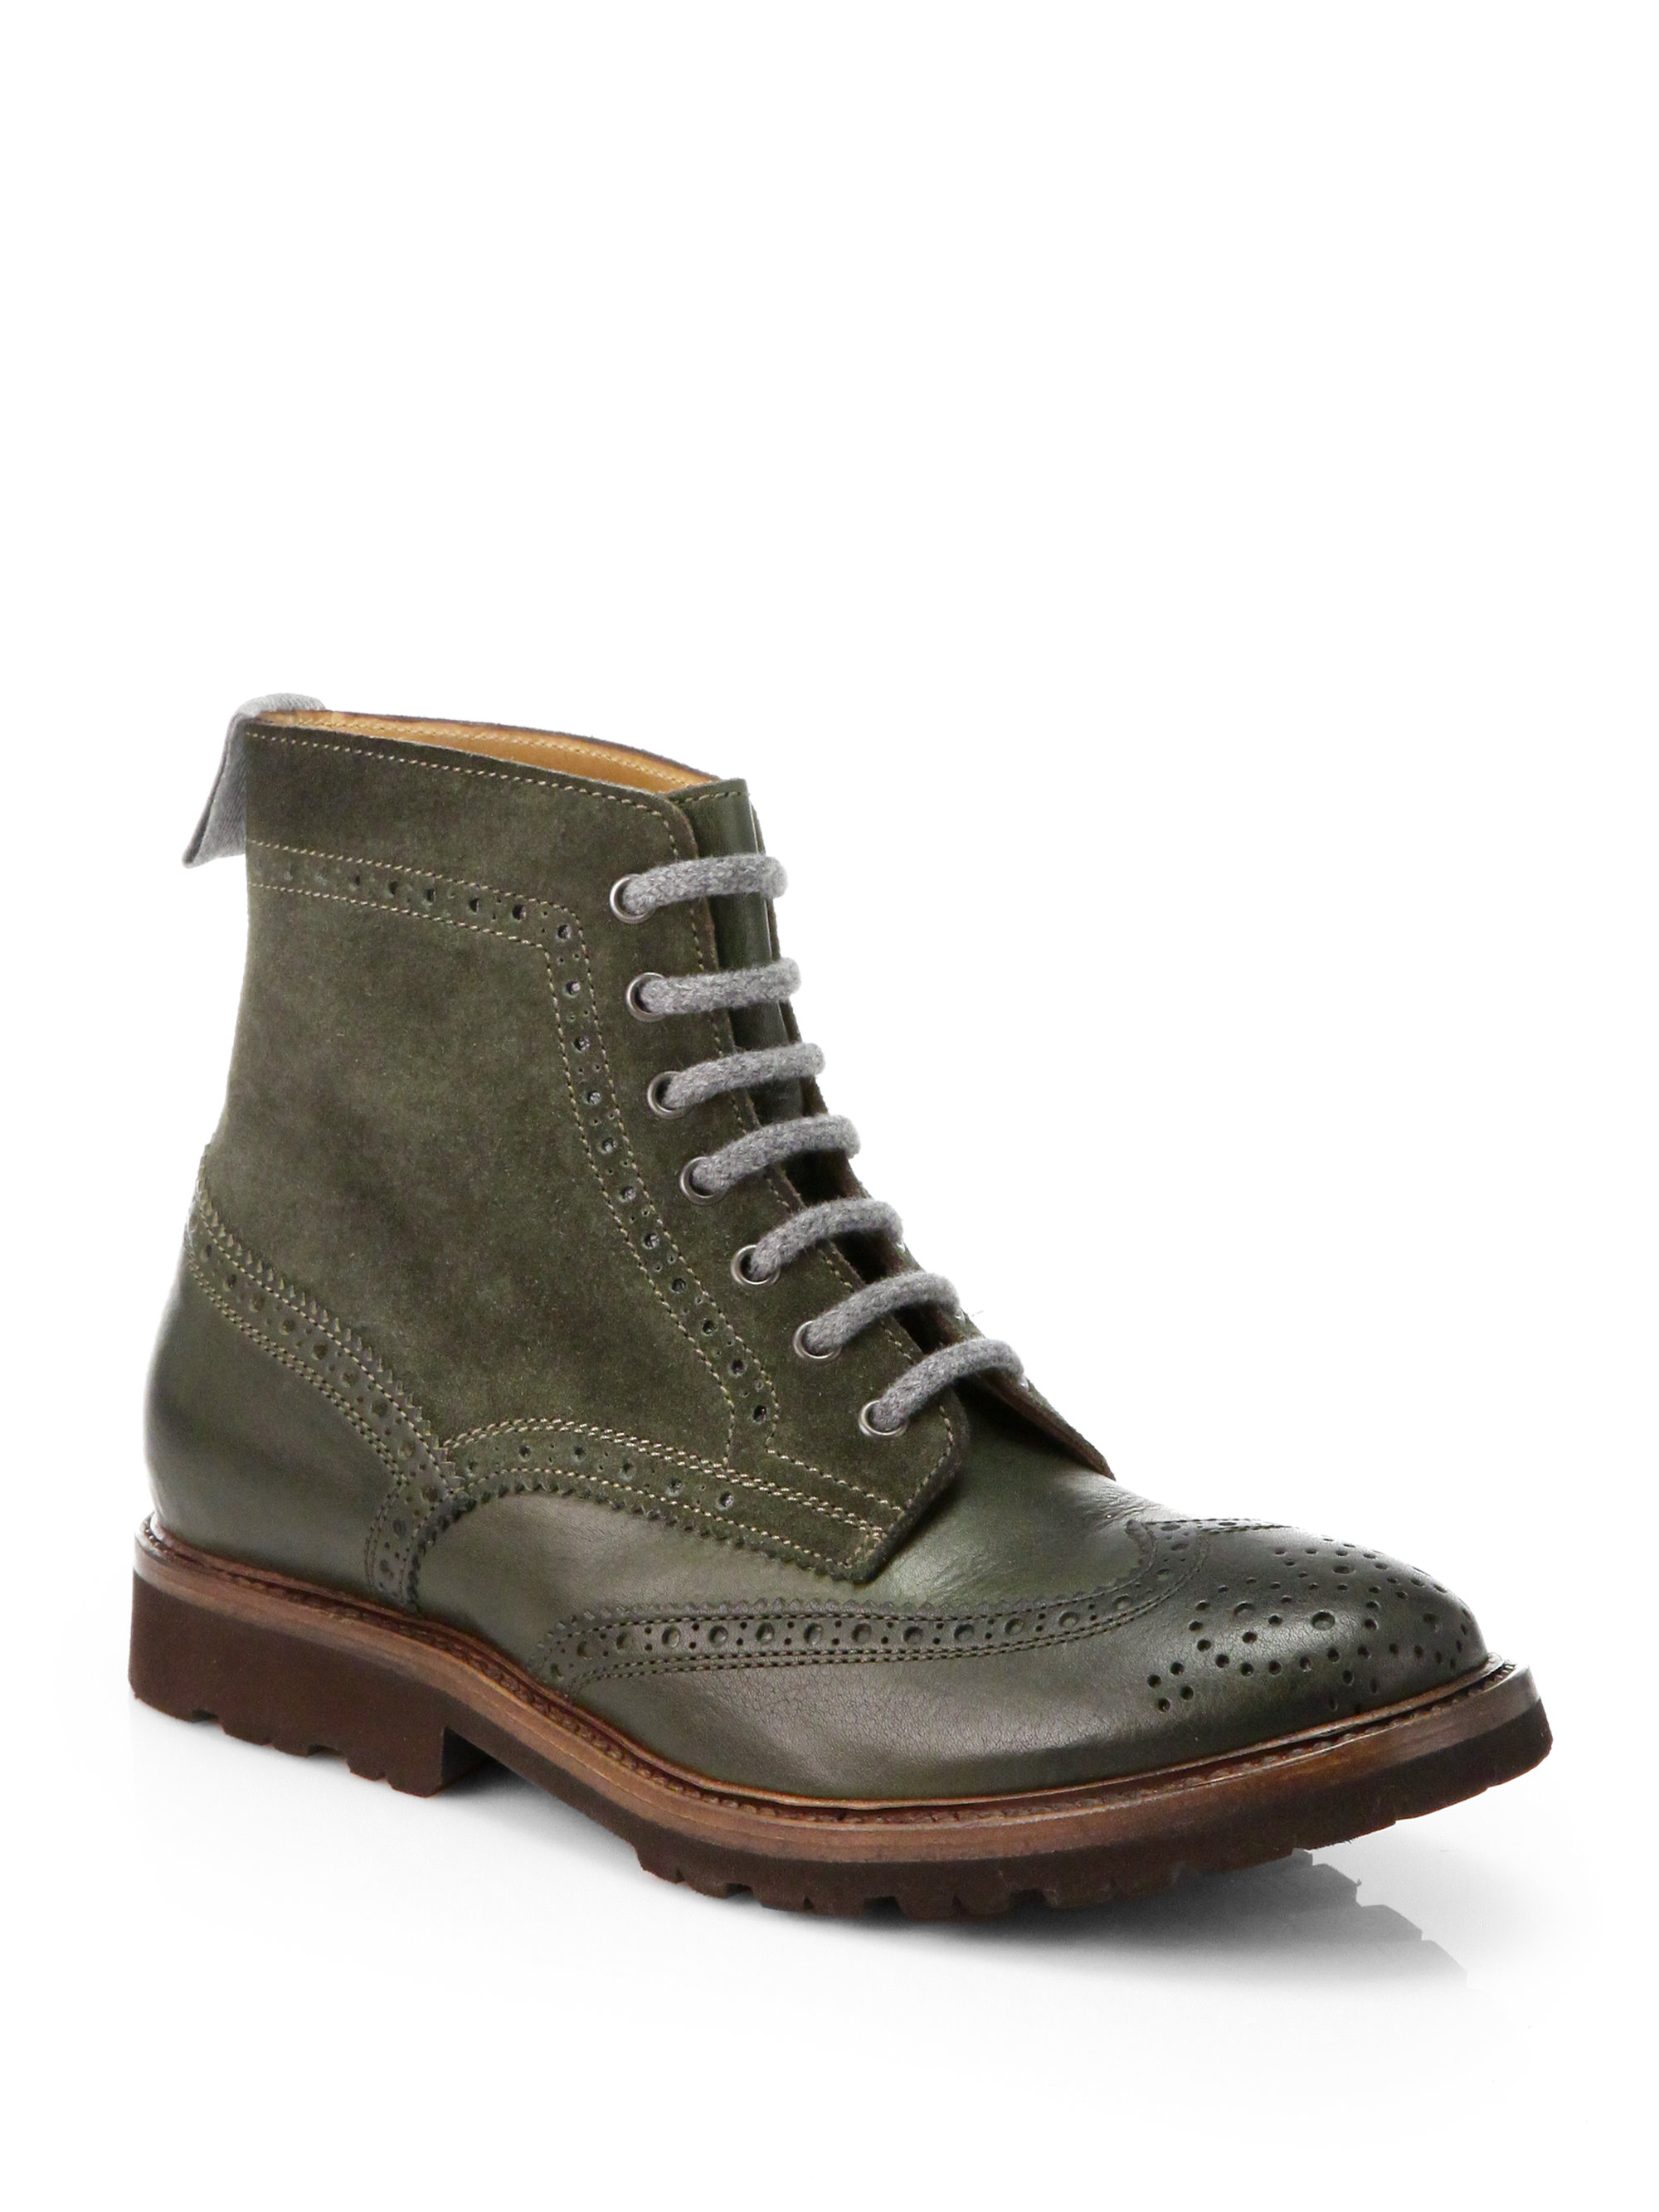 Lyst Brunello Cucinelli Leather Suede Wingtip Boots In